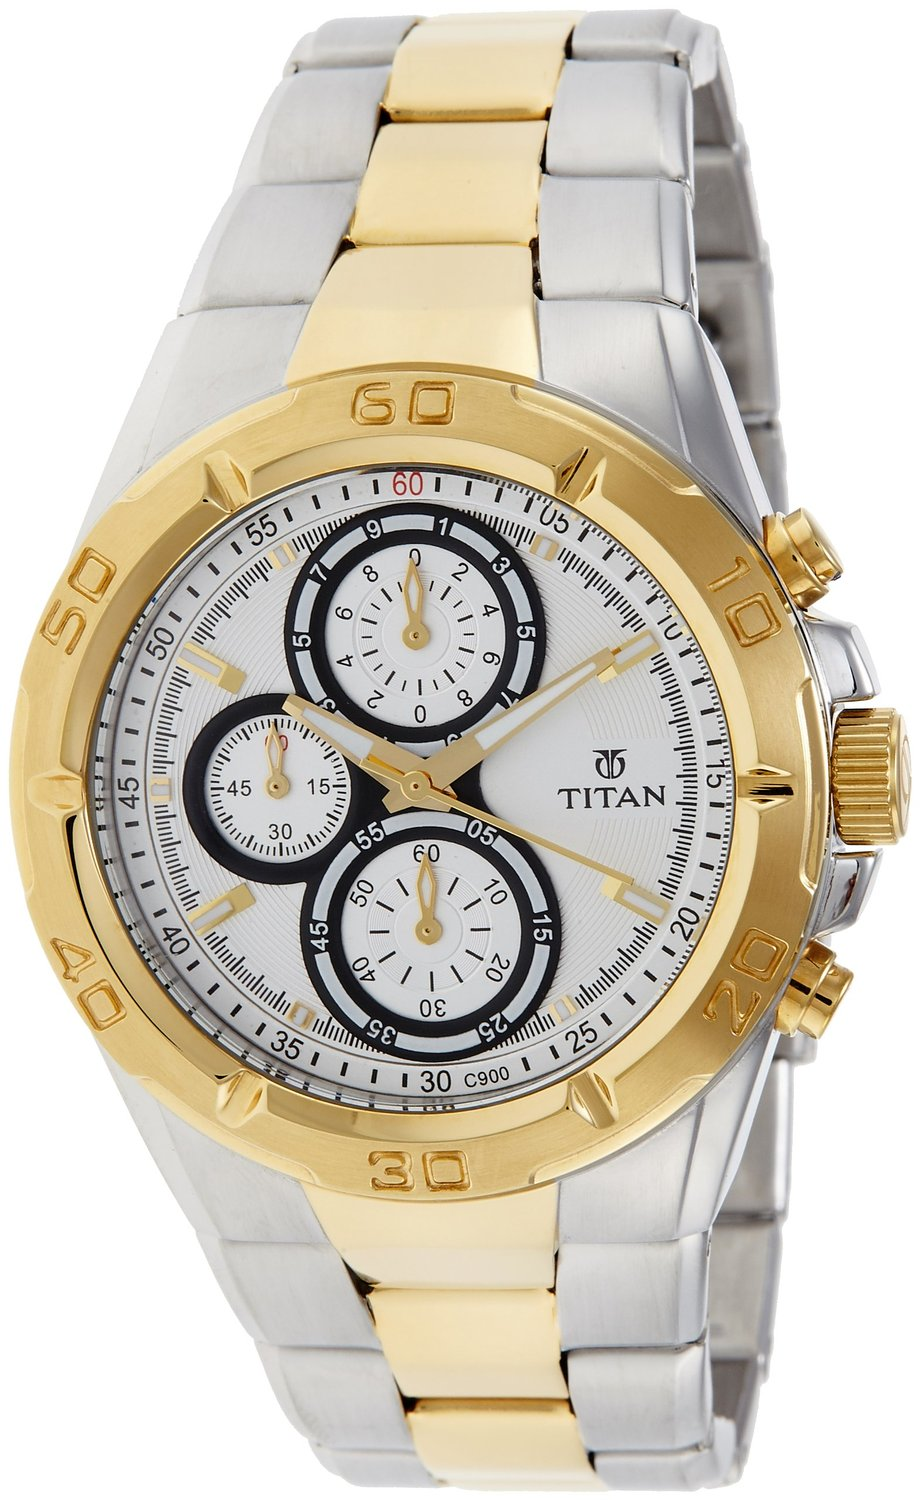 Offers On Titan Watches